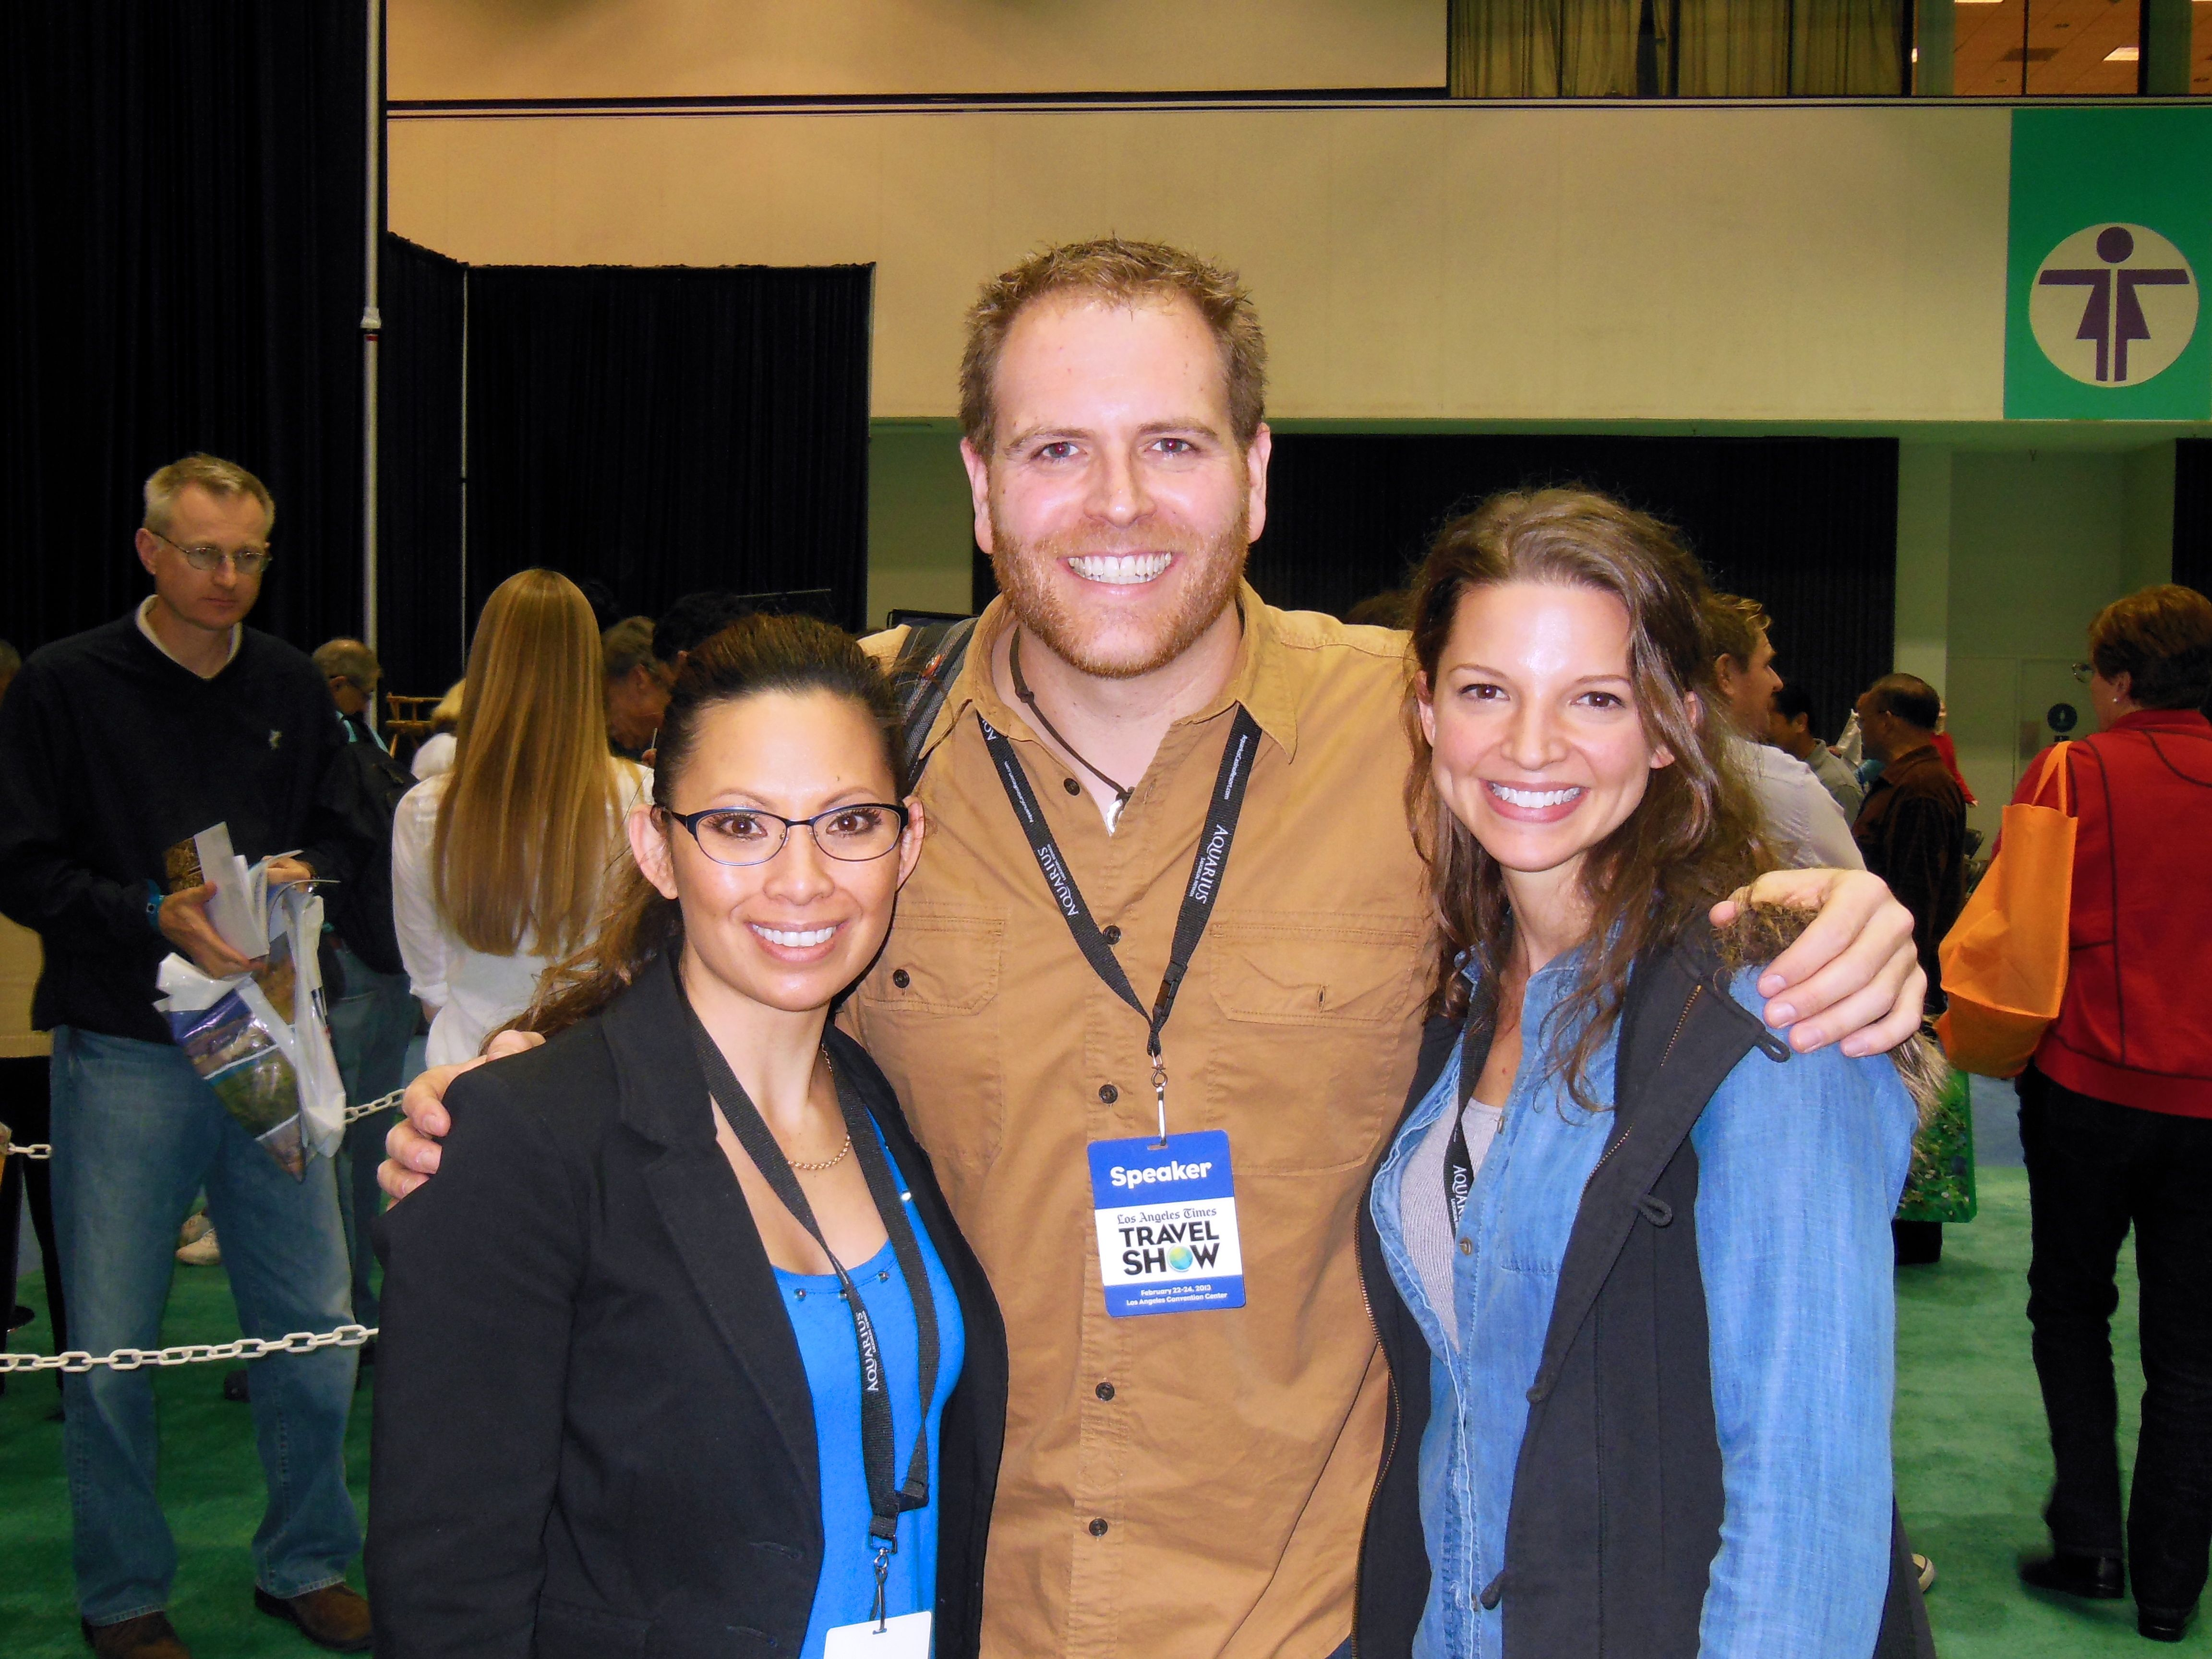 Hallie Gnatovich Wedding Pictures.Josh Gates And His Wife Home Exsplore